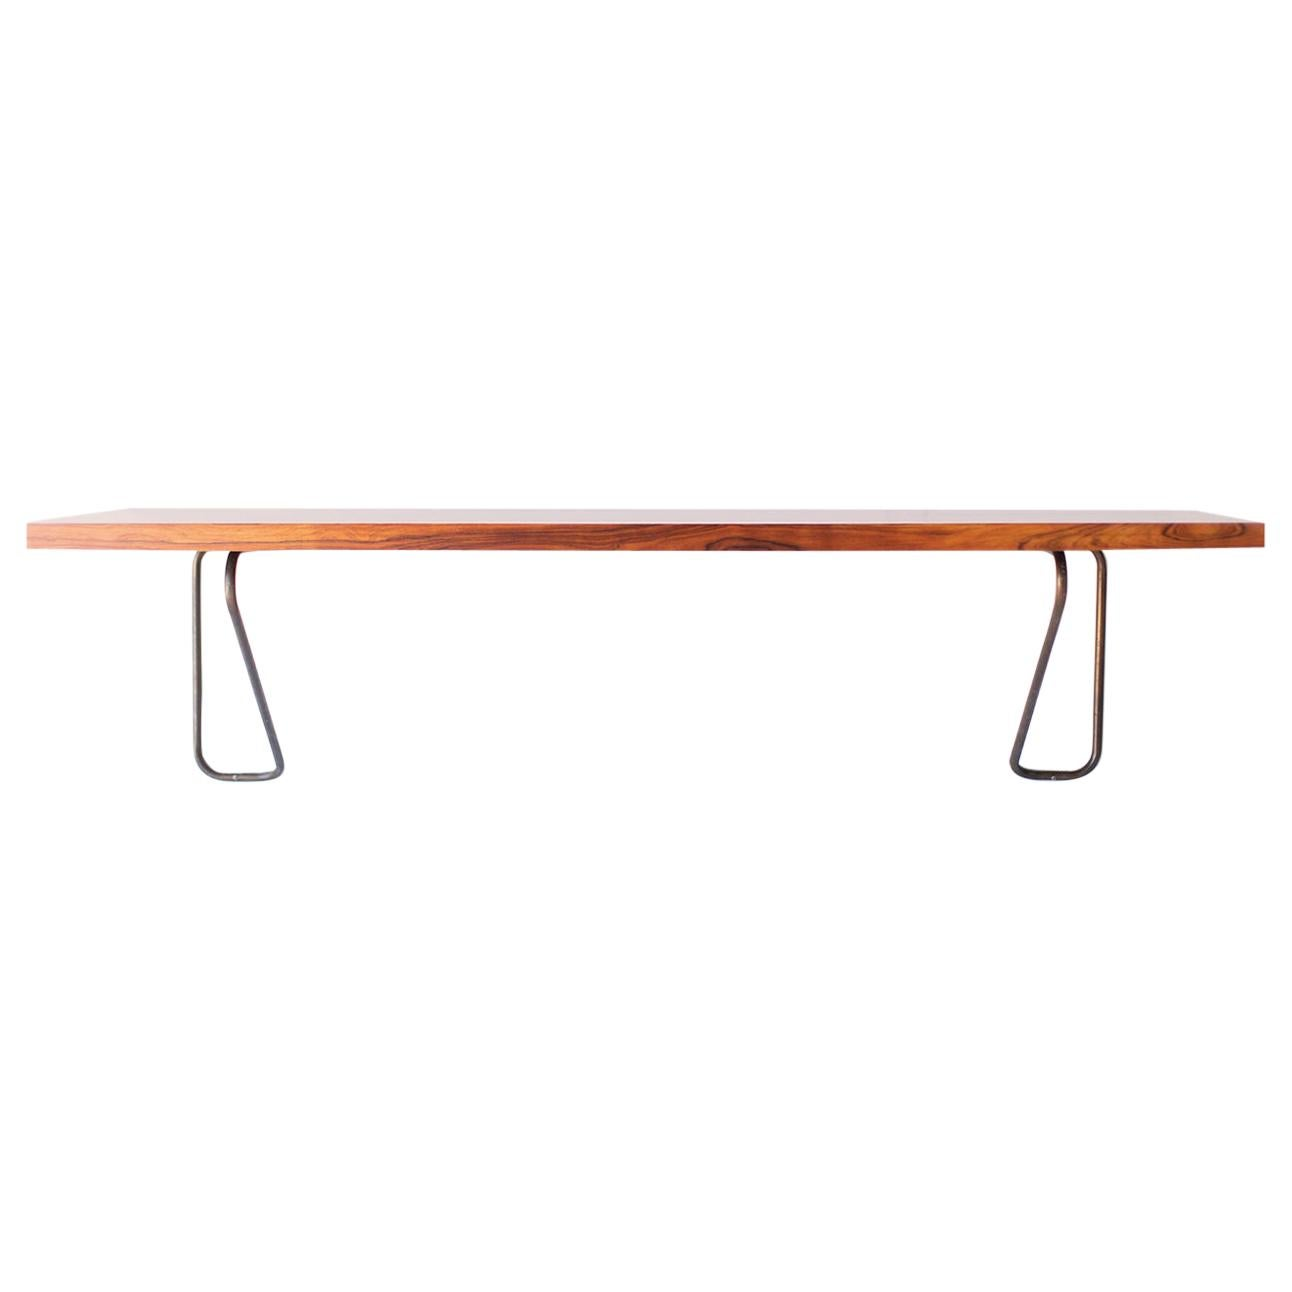 Milo Baughman Rosewood and Brass Floating Desk for Thayer Coggin